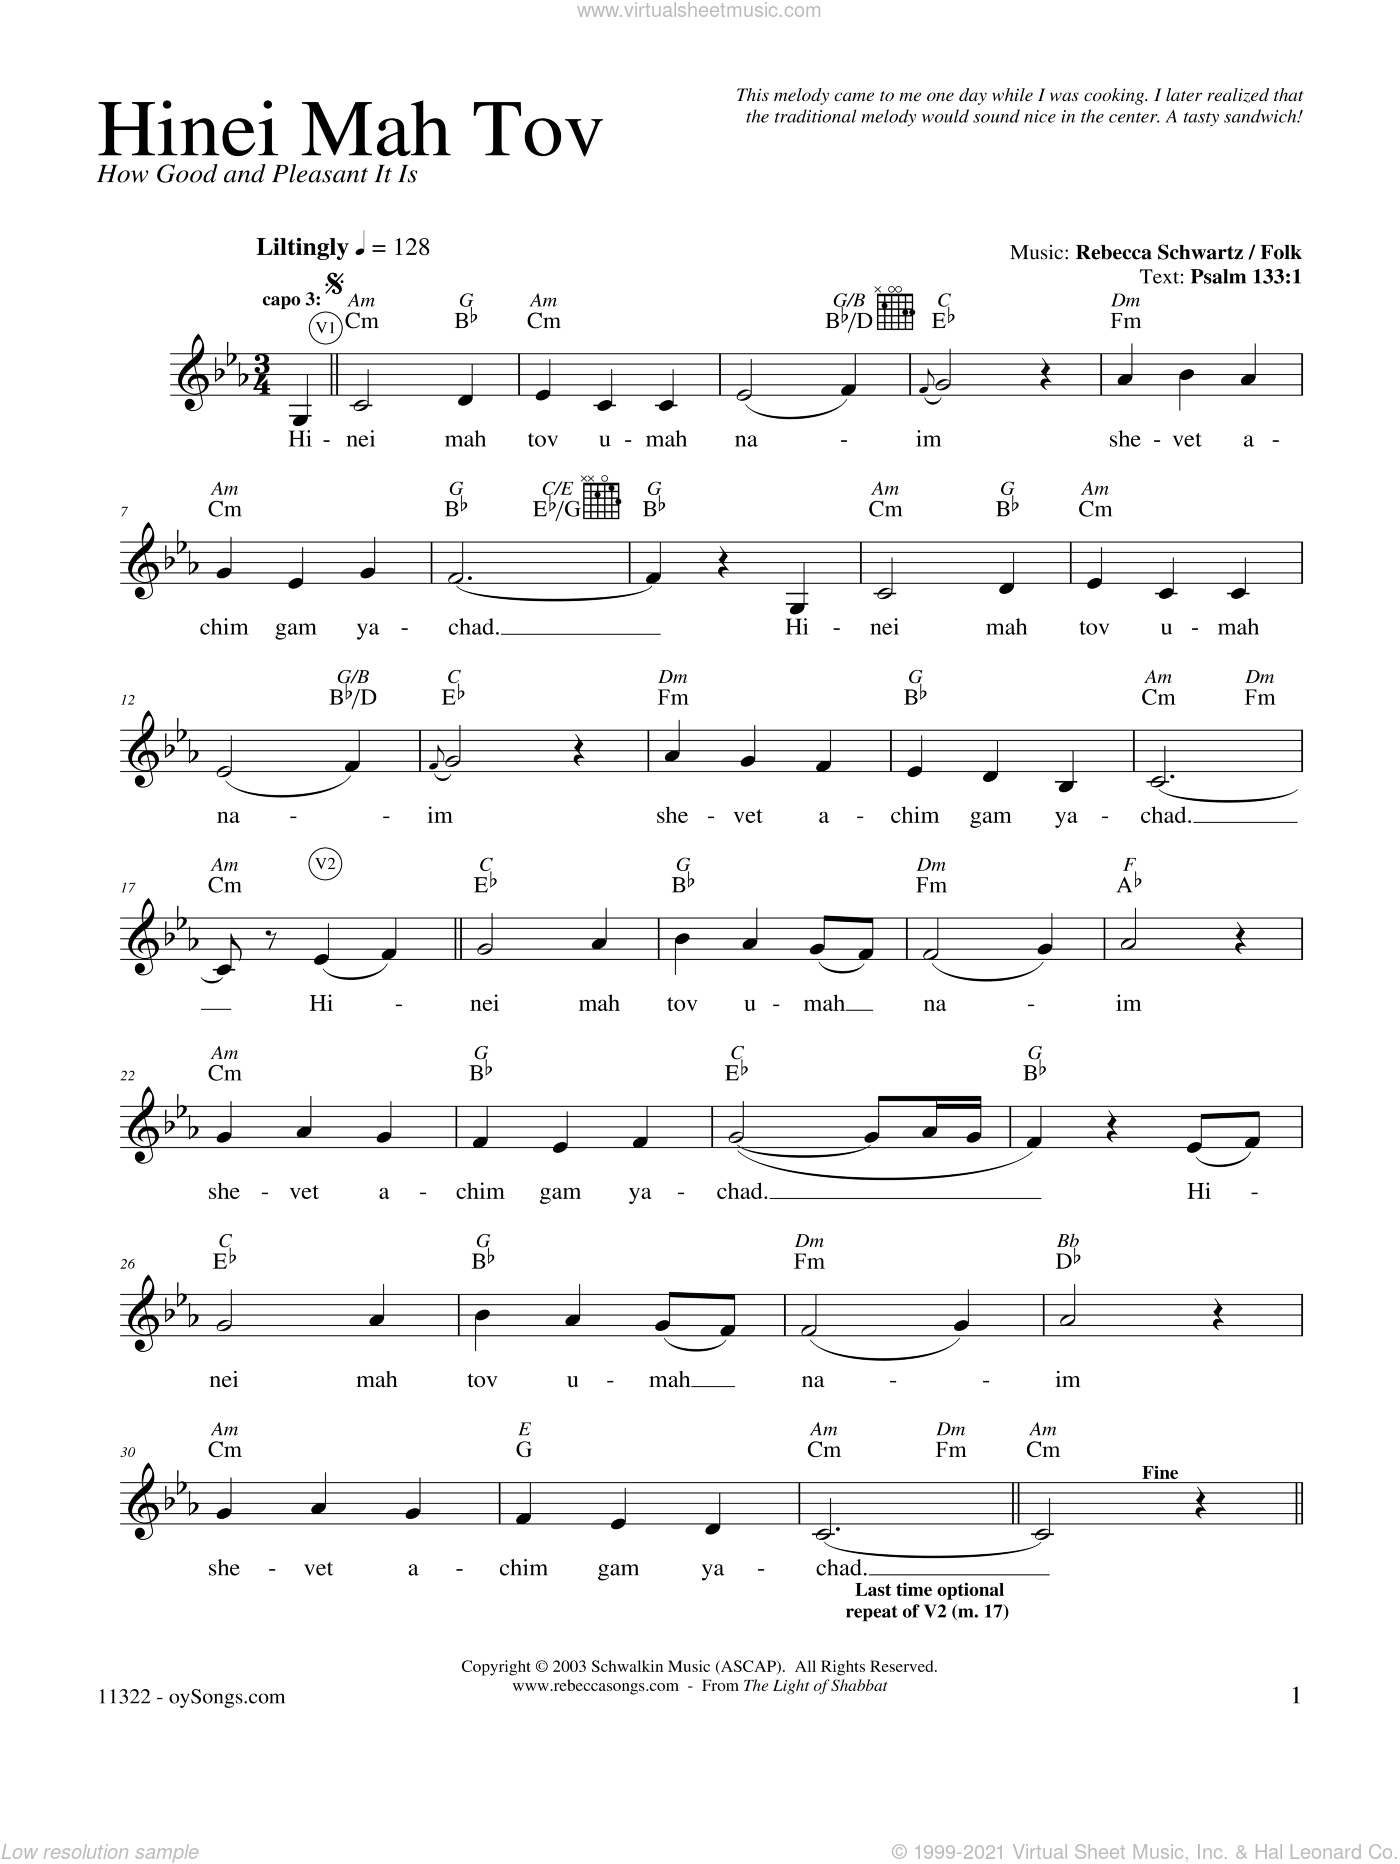 Hinei Mah Tov sheet music for voice and other instruments (fake book) by Rebecca Schwartz